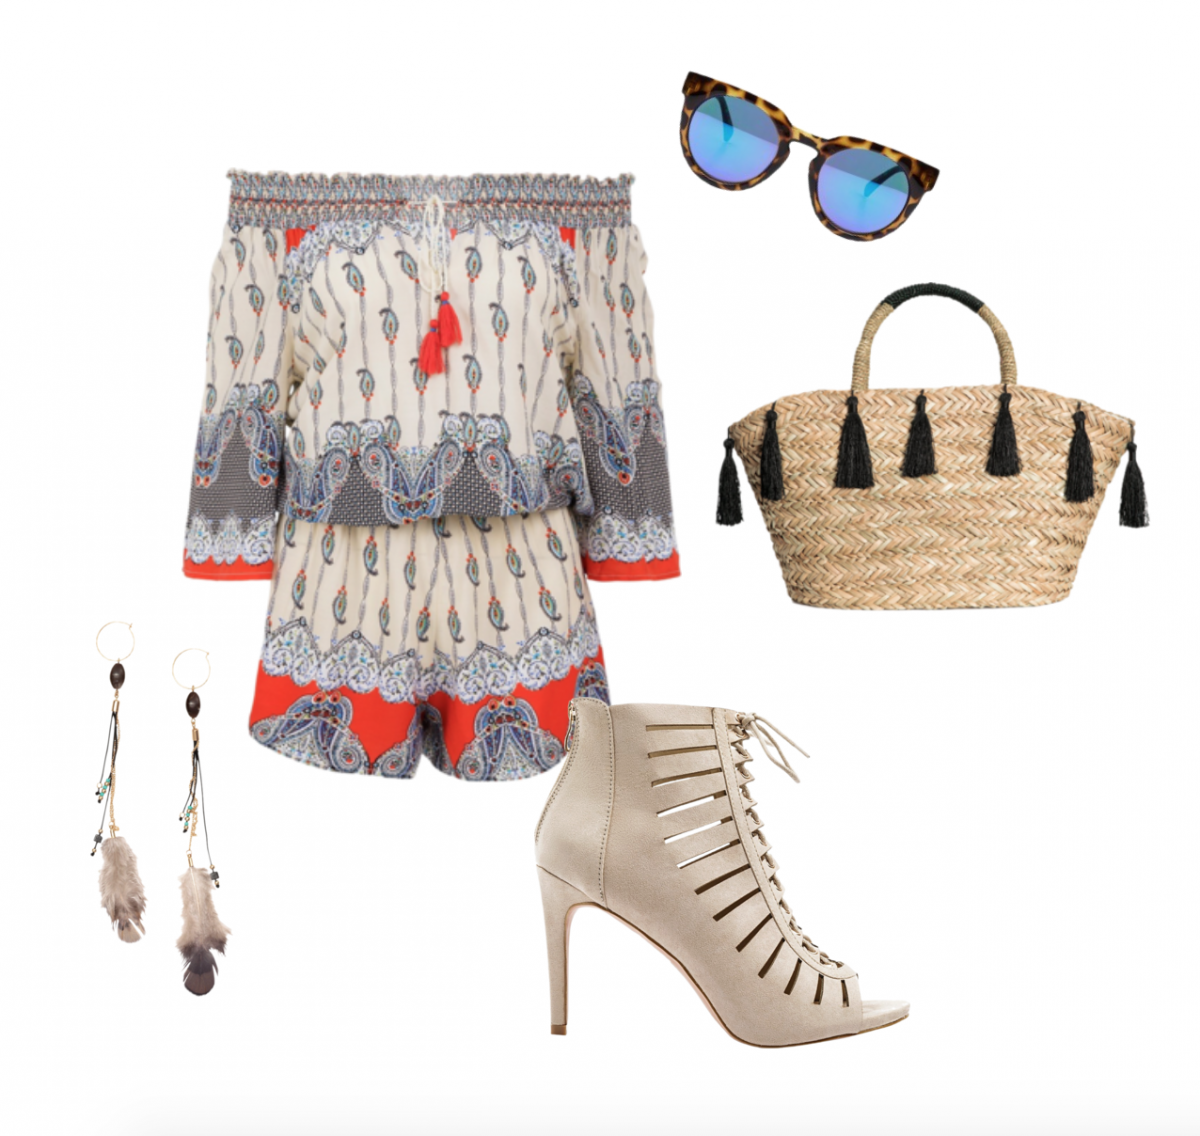 3x Zomerse Outfits